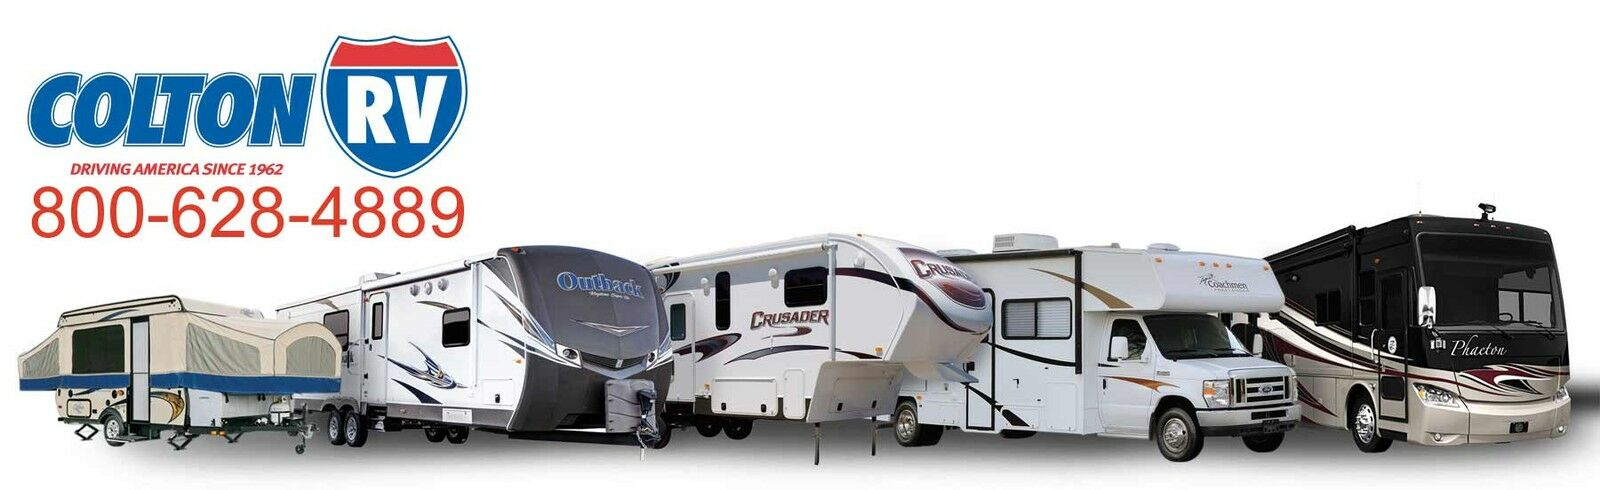 Colton RV - WNY's Premier RV Dealer